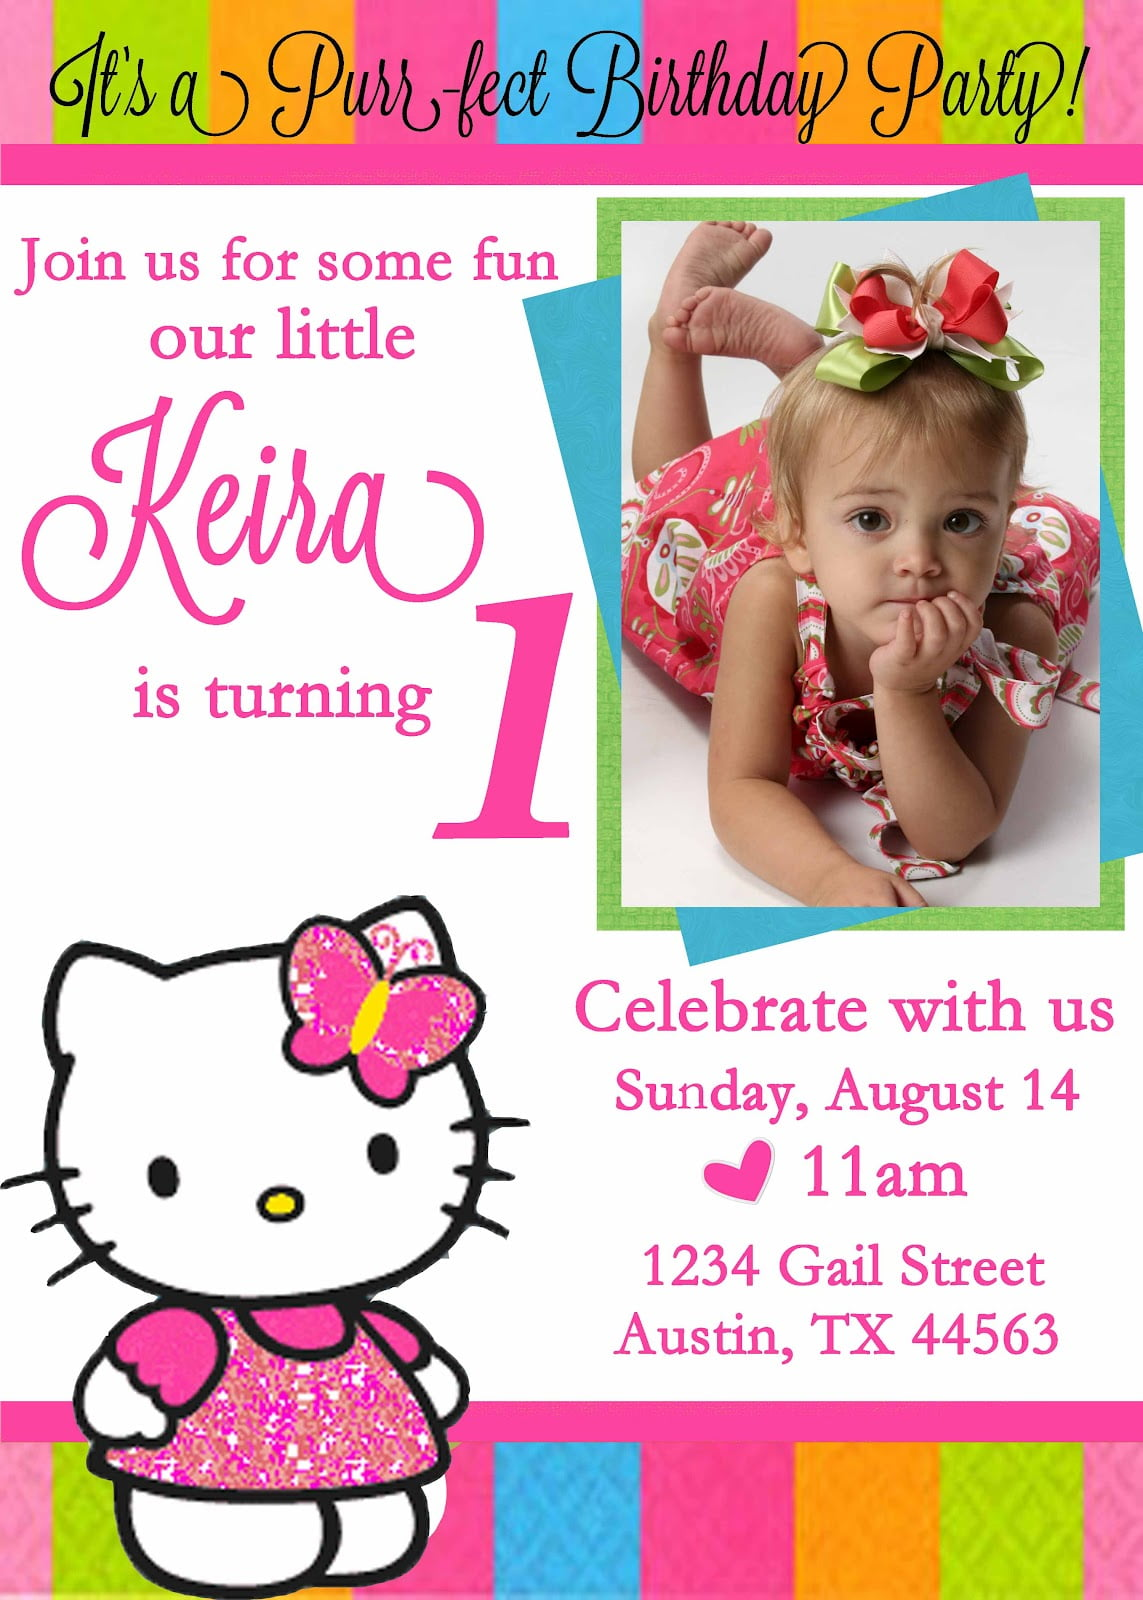 Customized birthday invitations free samannetonic customized birthday invitations free filmwisefo